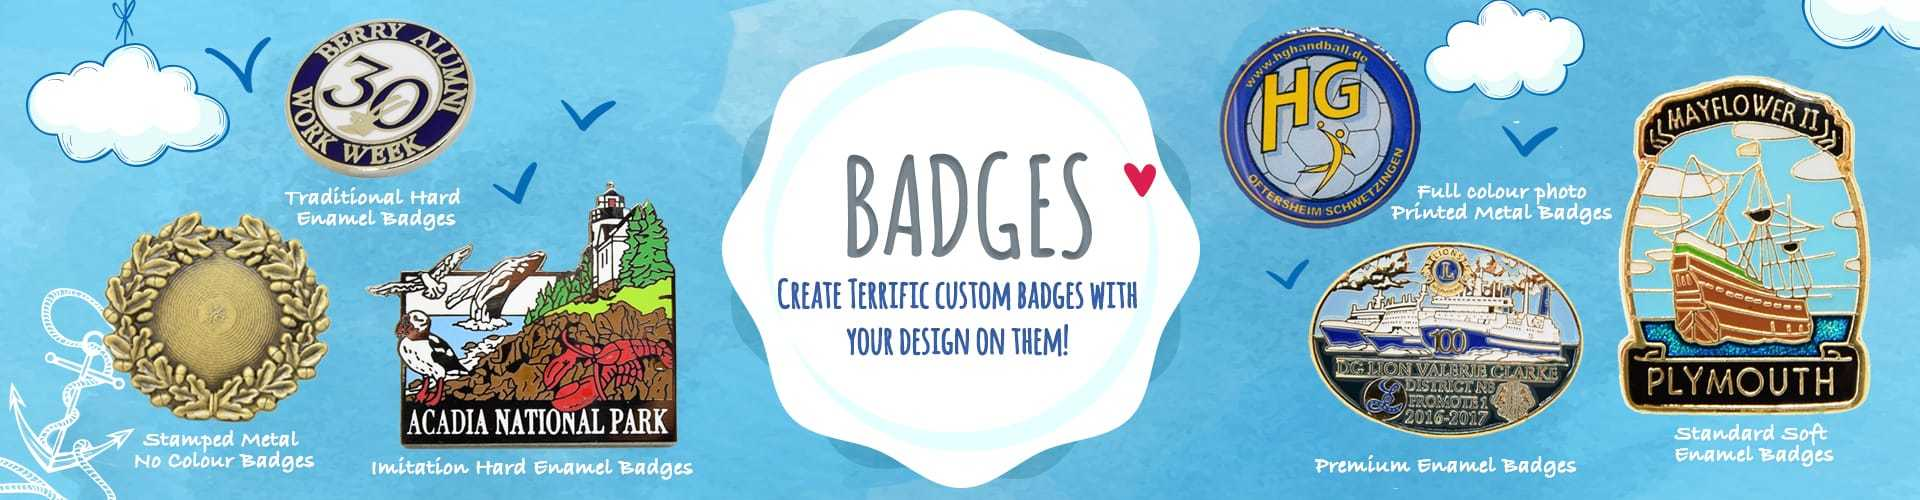 Create Terrific Badges with Your Design on them!